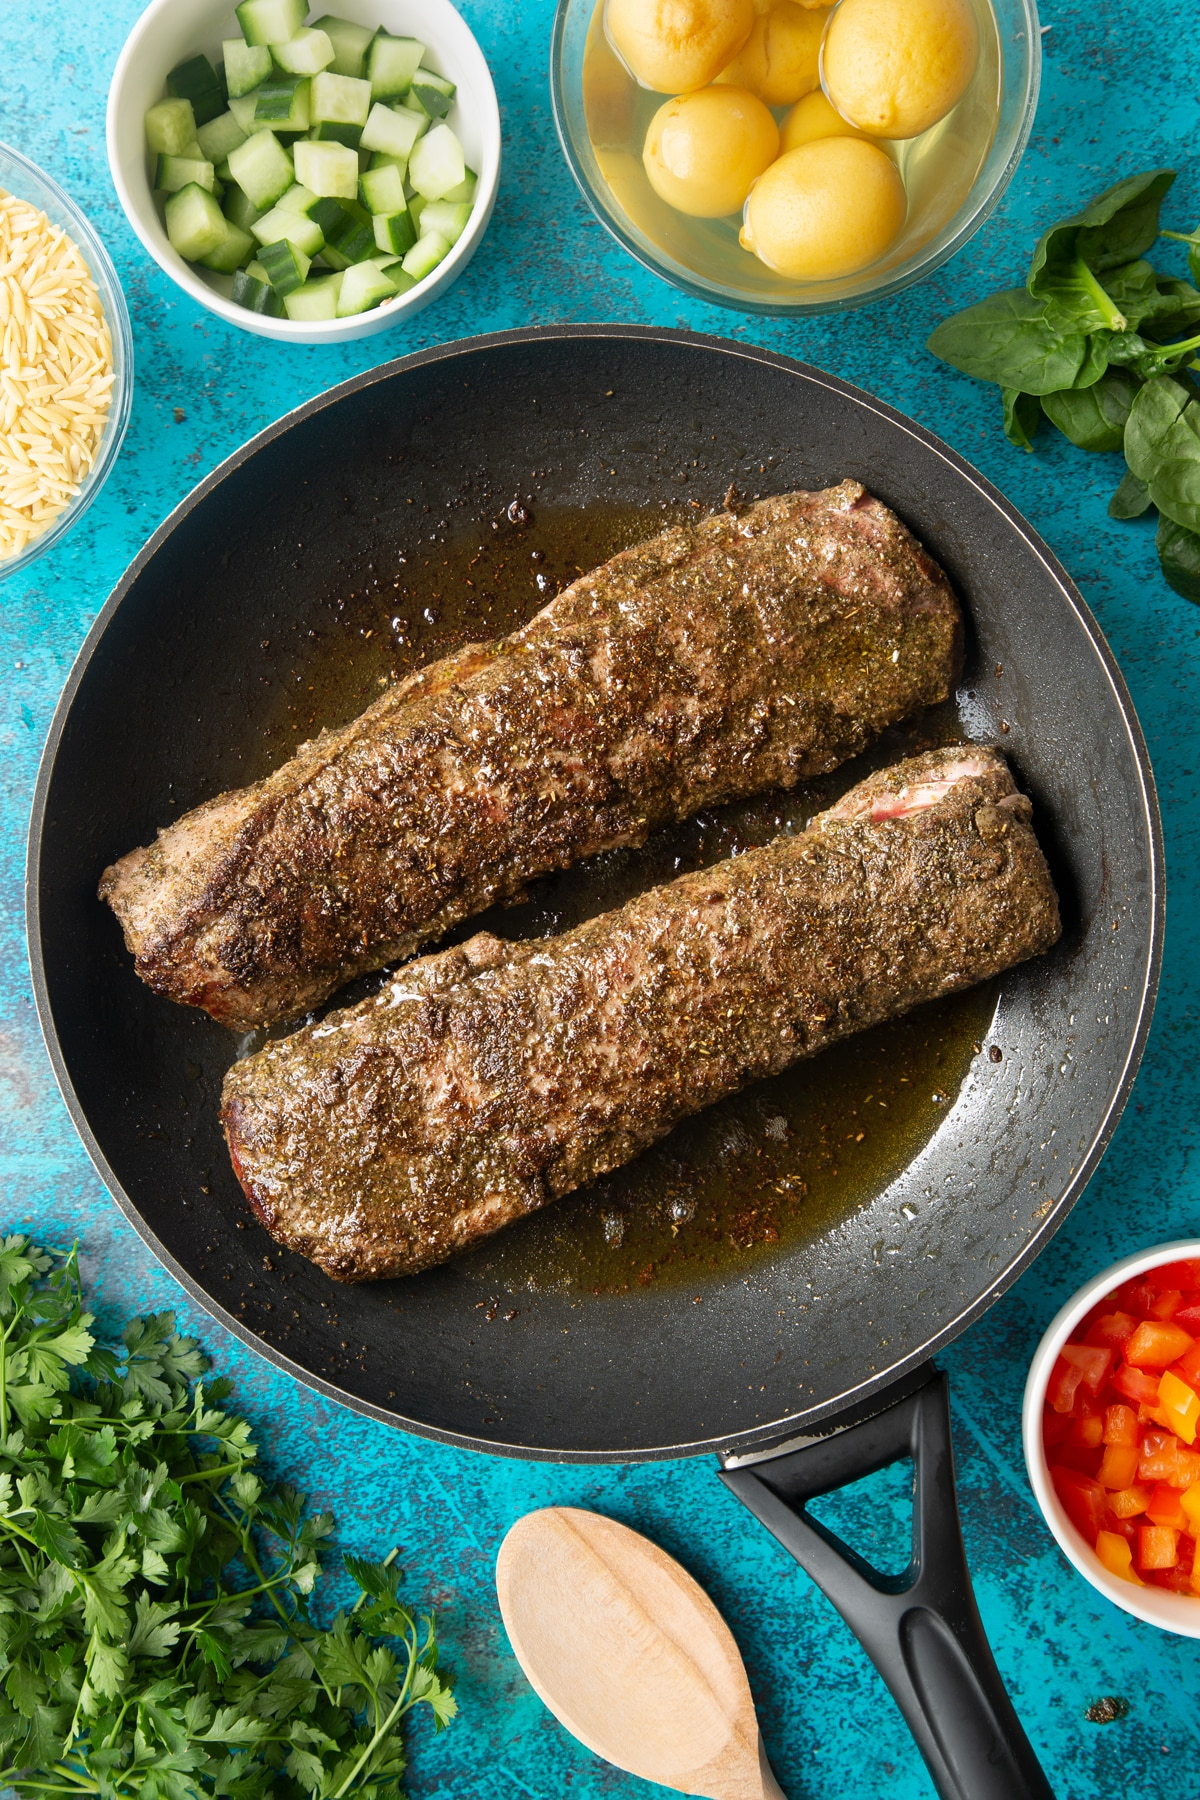 Two pieces of cooked cannon of Welsh lamb covered with a herb and oil rub in a frying pan.